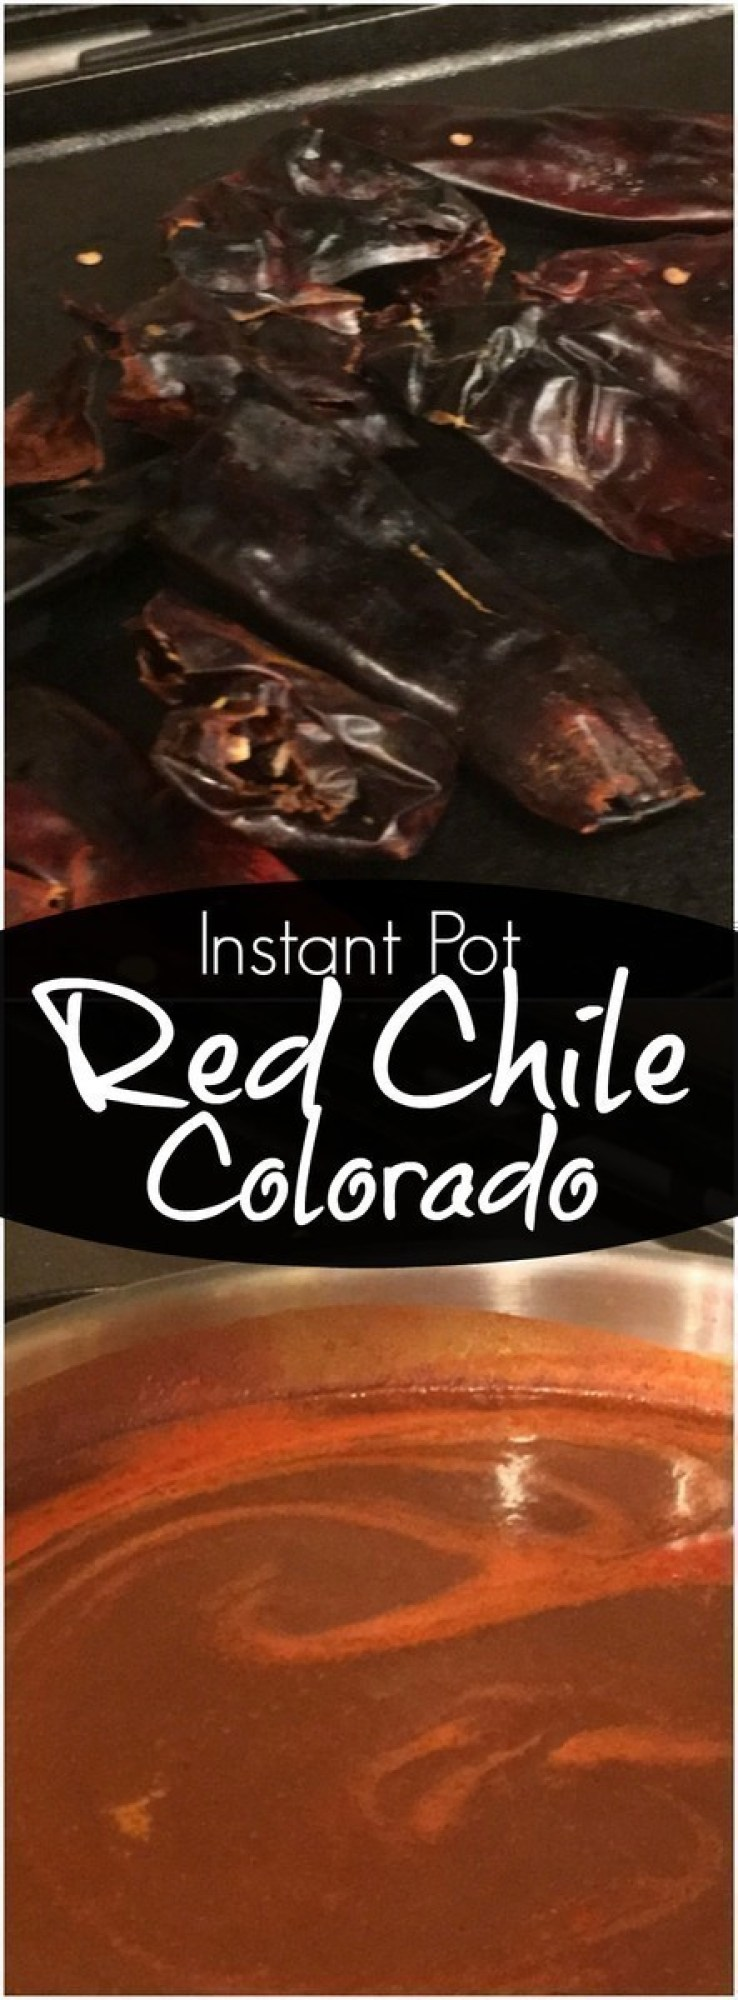 This Red Chile Colorado is super easy to make in the Instant Pot and is excellent used with enchiladas, burritos, and even drizzled over tamales.  #InstantPot #chile #chilecolorado #pressurecooker #Mexican